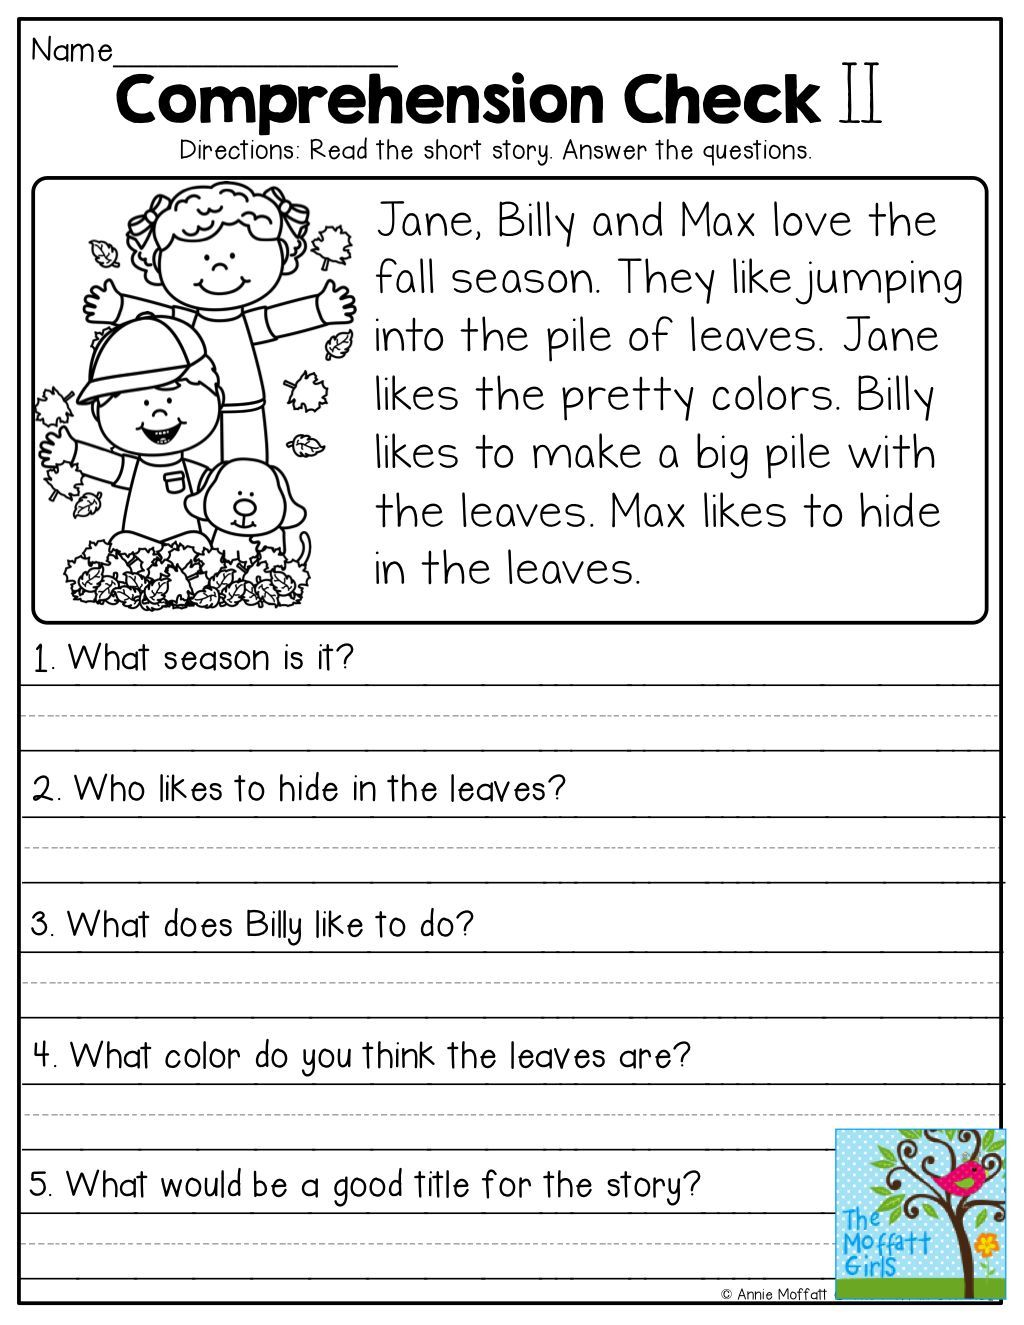 Worksheets Reading Comprehension Printable Worksheets pin by suzanne beck on special ed pinterest reading for kindergarten fall pumpkin